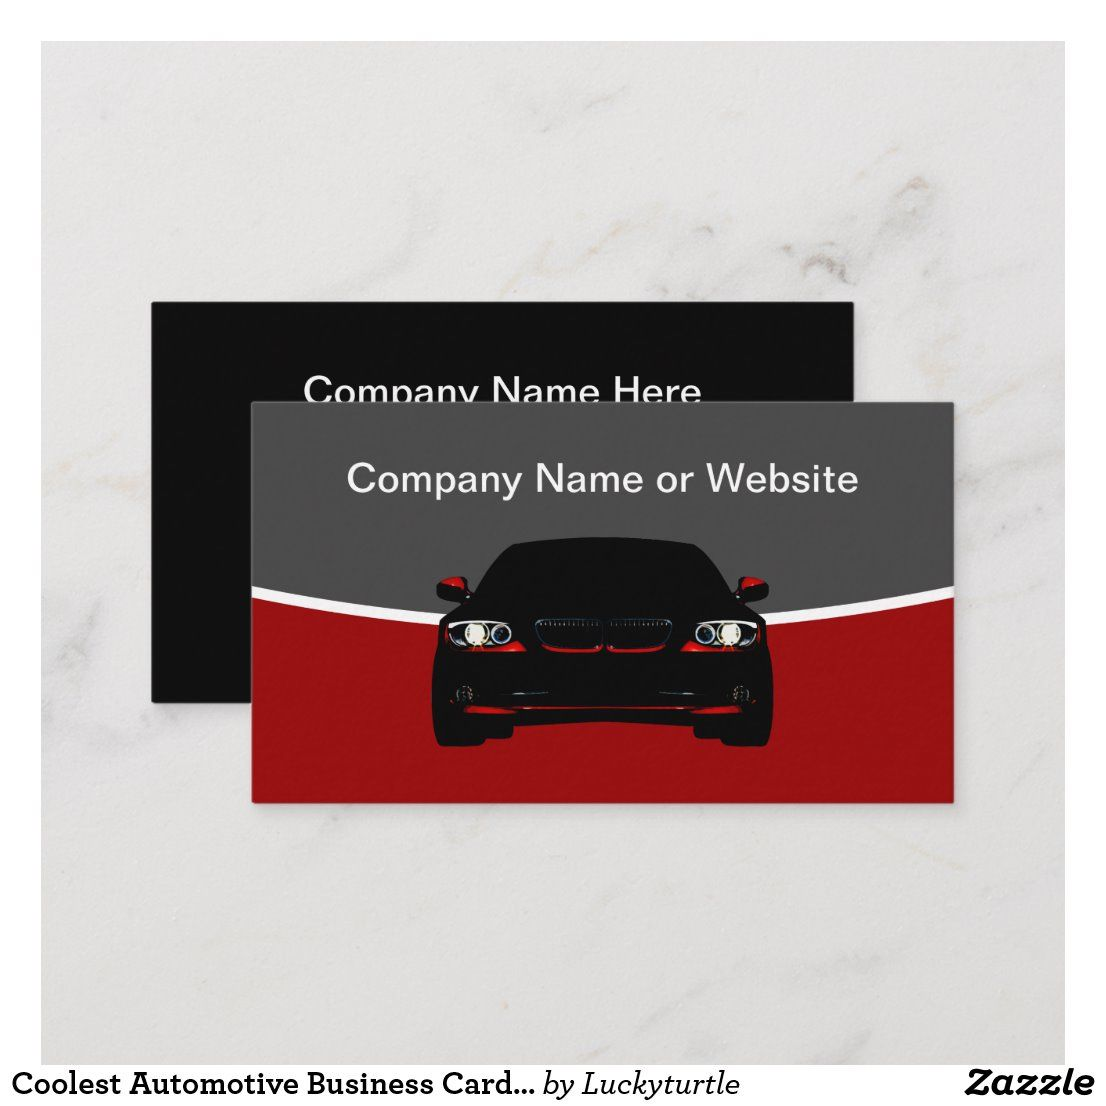 Coolest automotive business card template in